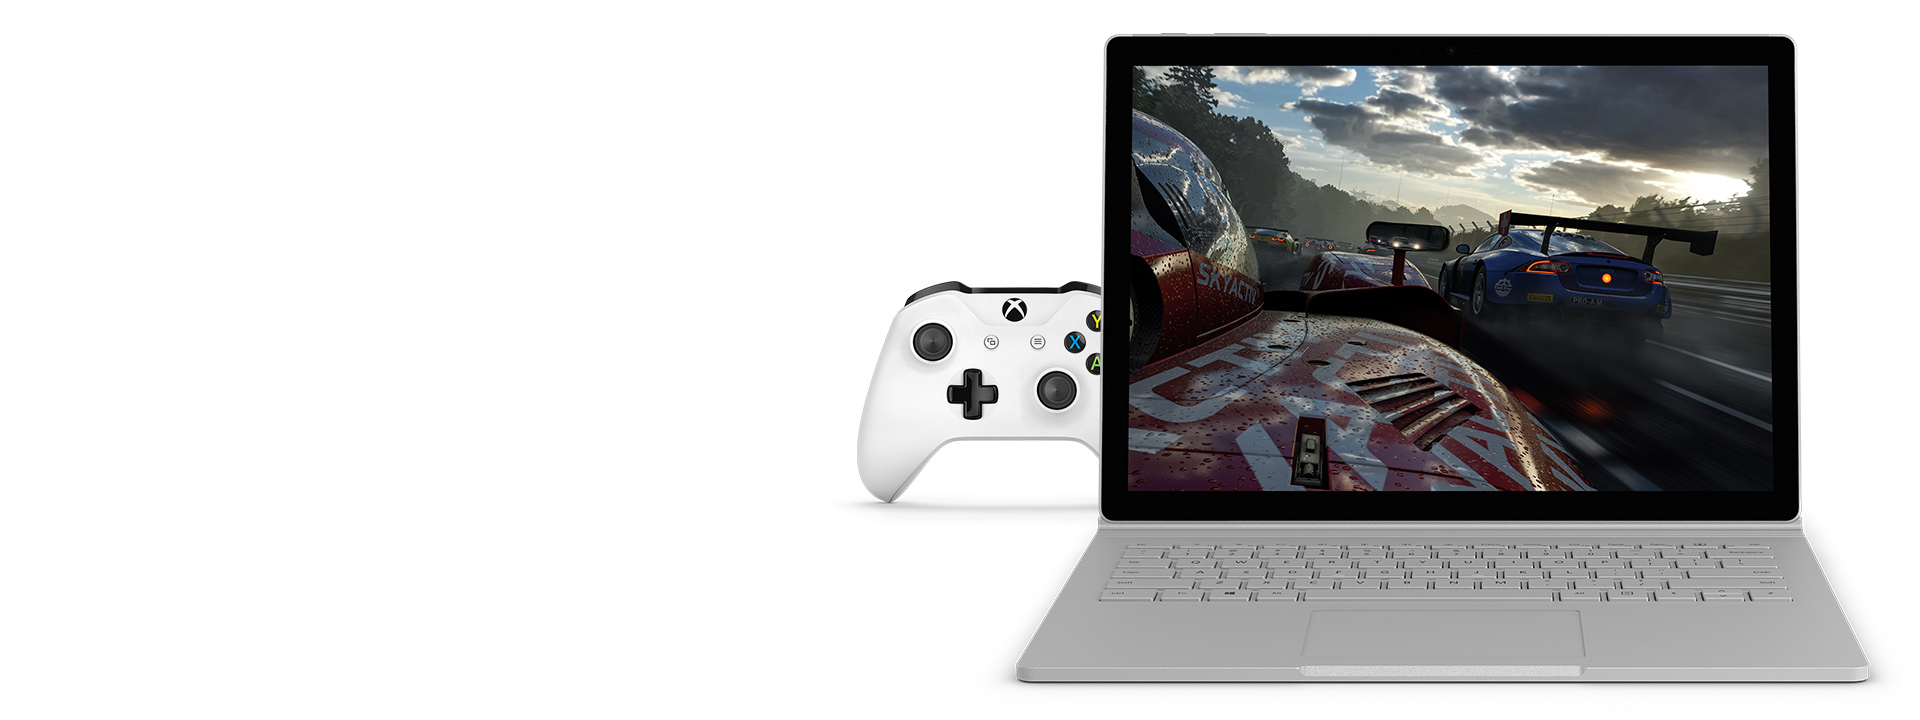 Spilling på Surface Book 2 med Xbox Wireless Controller